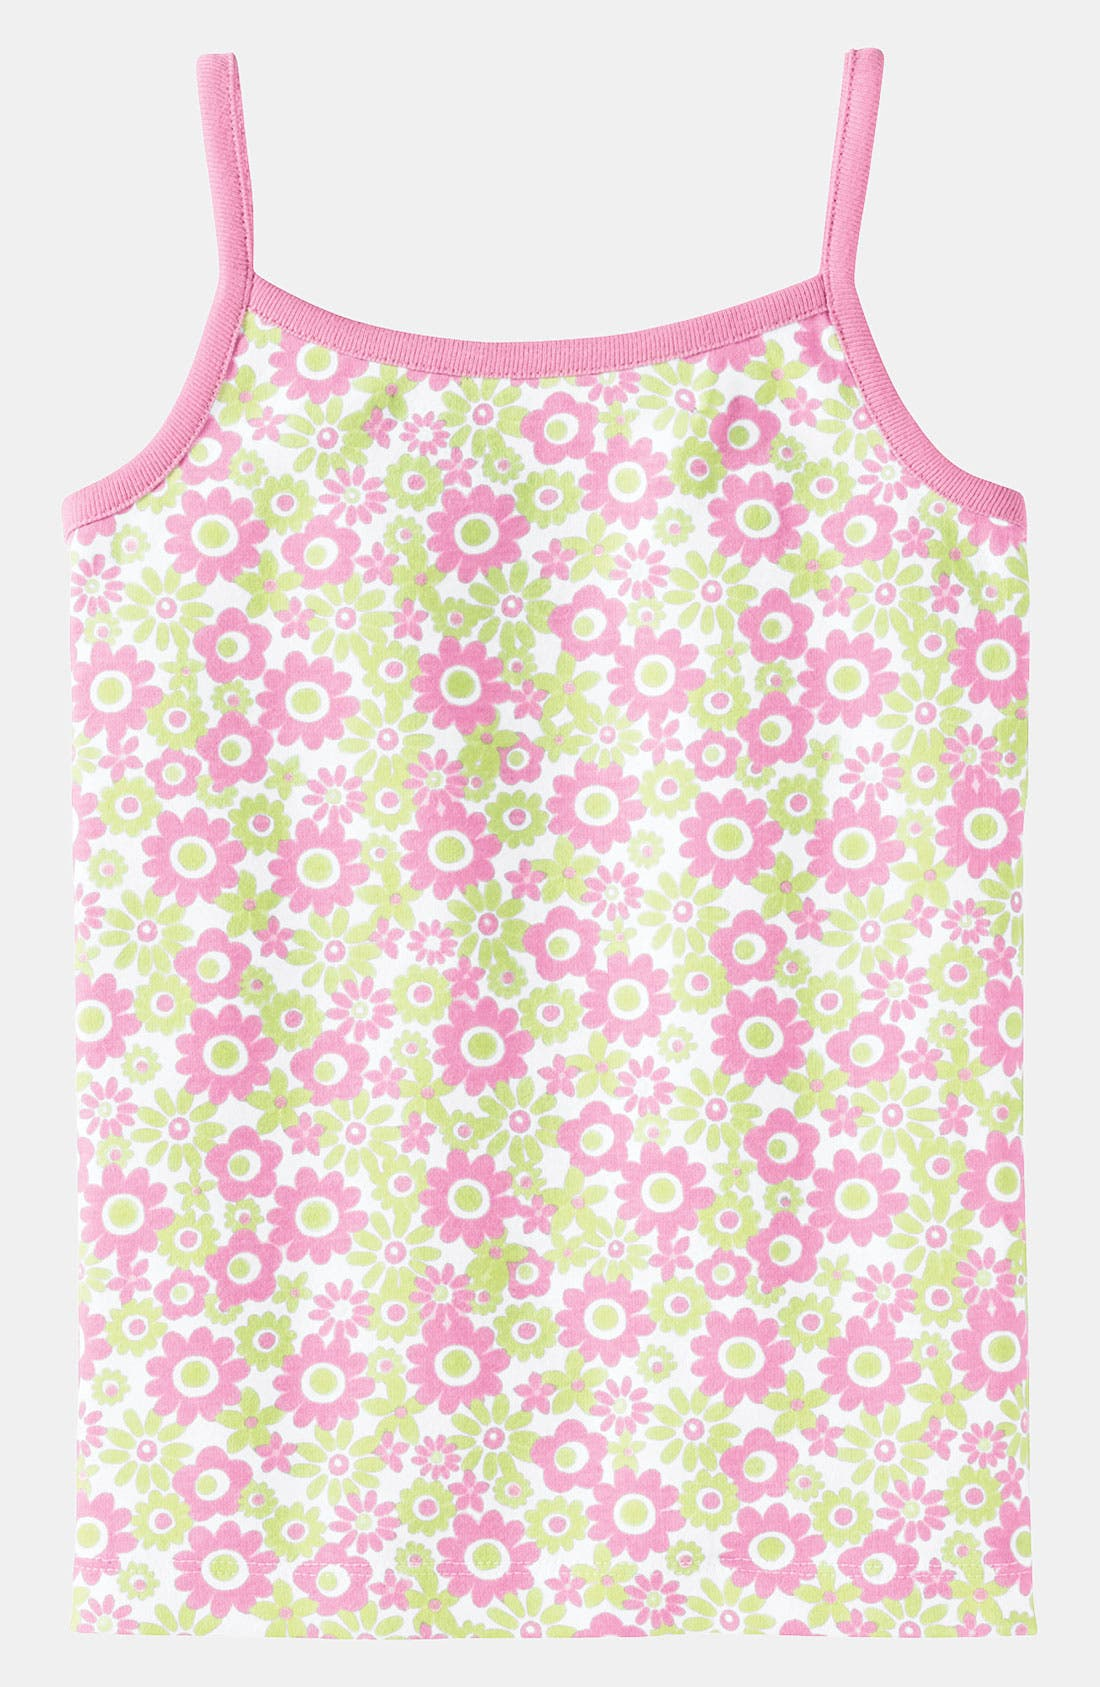 Main Image - Hanna Andersson Organic Cotton Camisole (Little Girls & Big Girls)